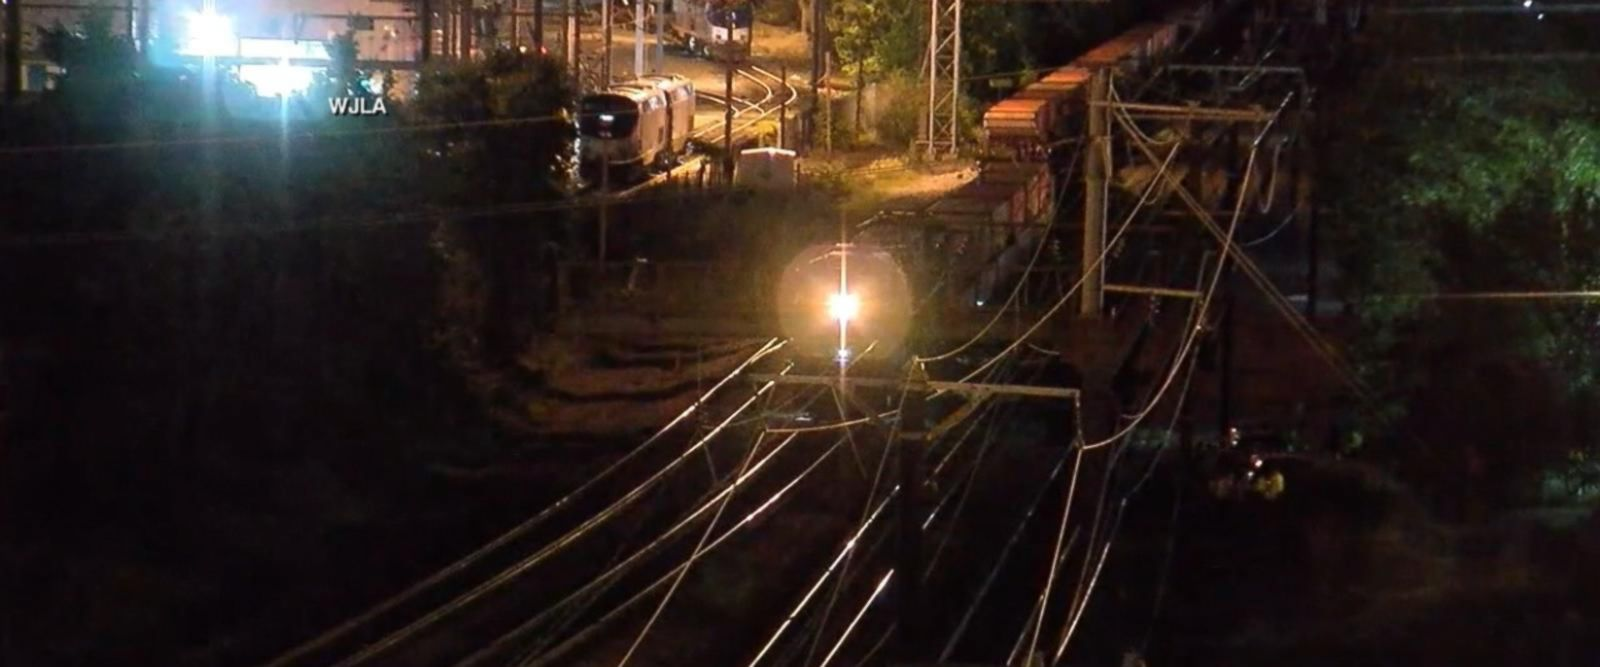 VIDEO: 2 killed on train tracks in Washington, DC